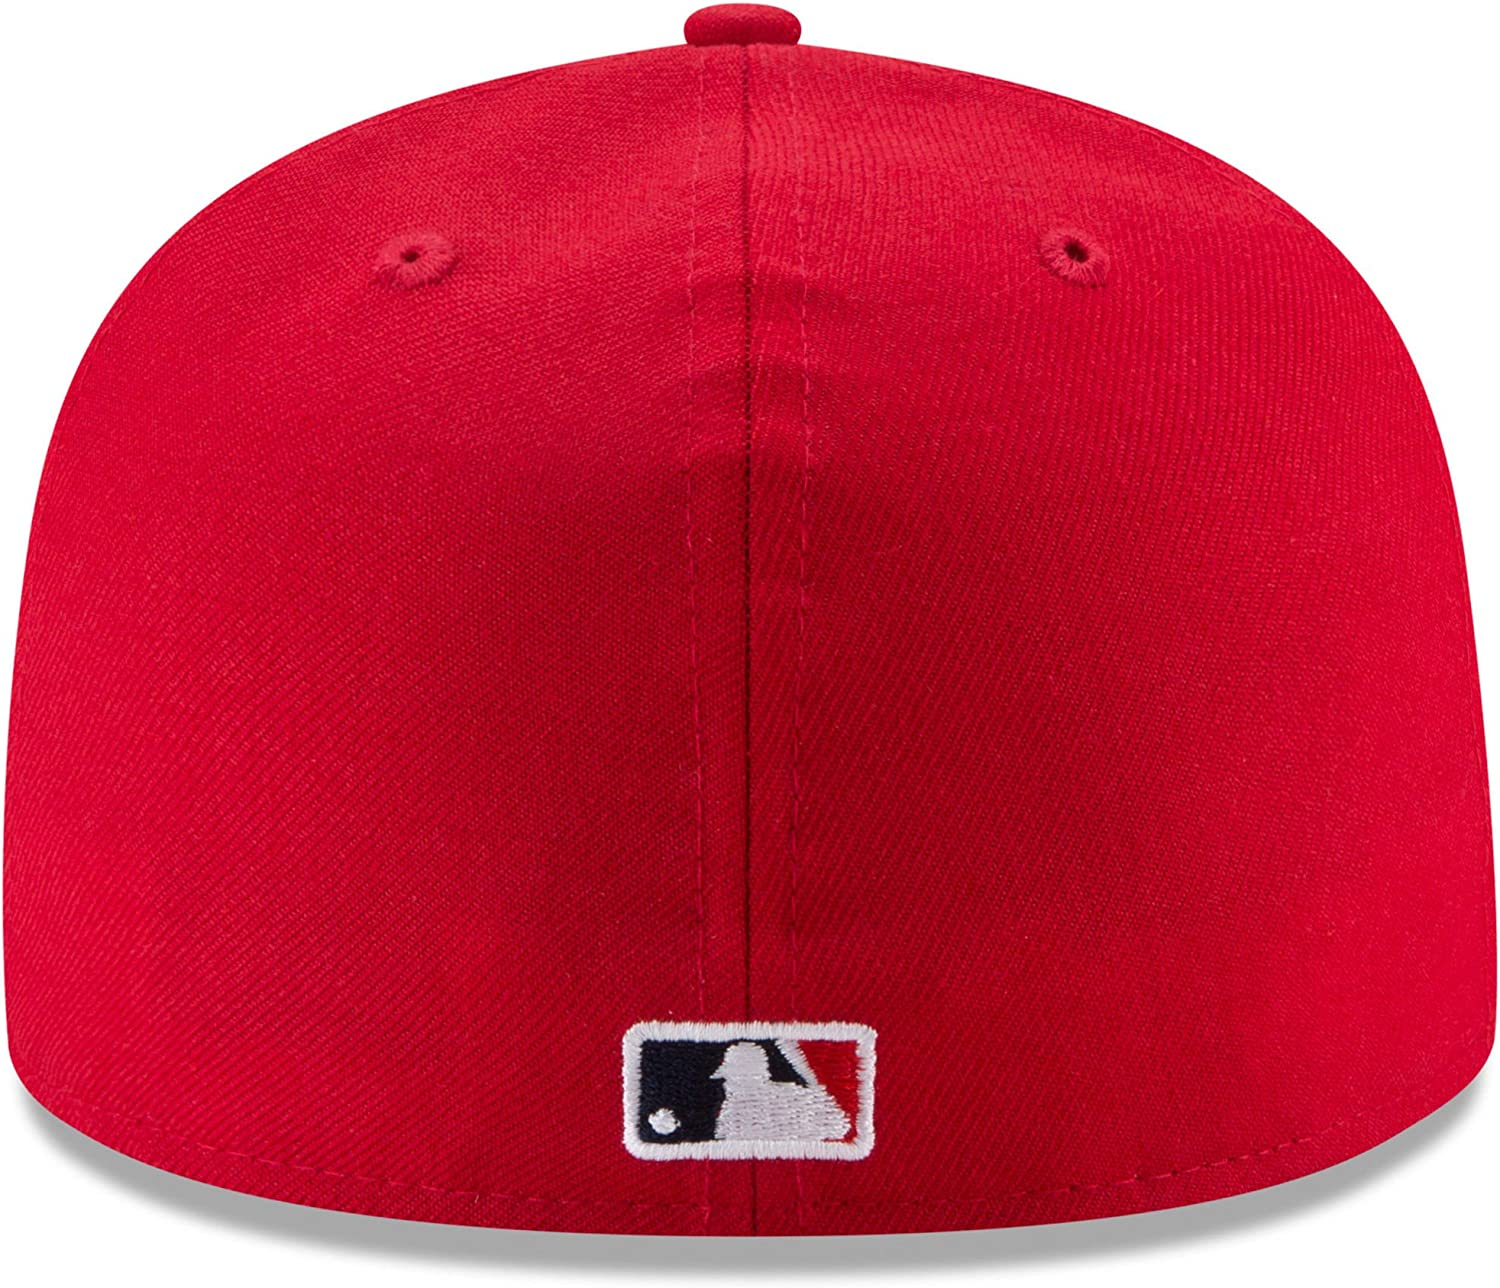 New Era Mens Los Angeles Angels Game Authentic Collection On-Field 59FIFTY Fitted Hat